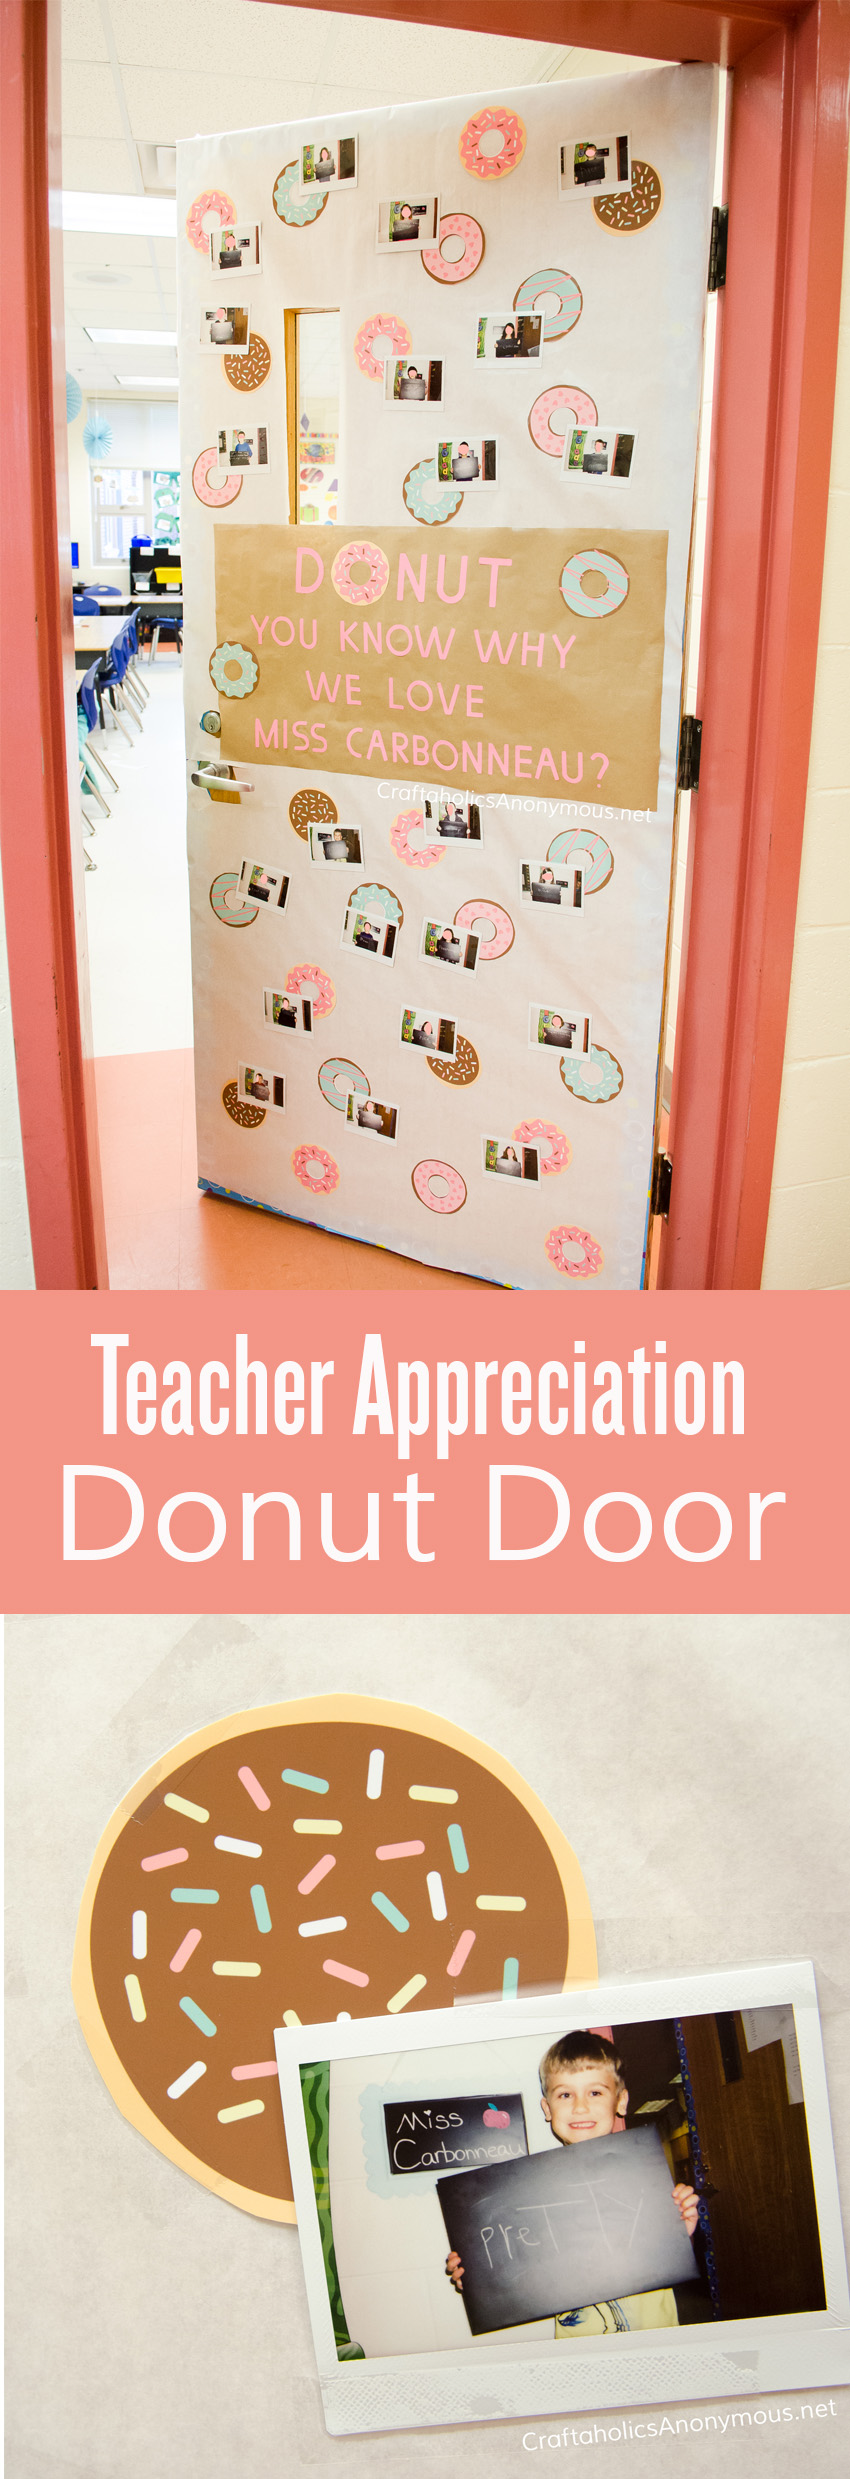 Teacher Appreciation Door :: DONUT you know why we love our teacher?